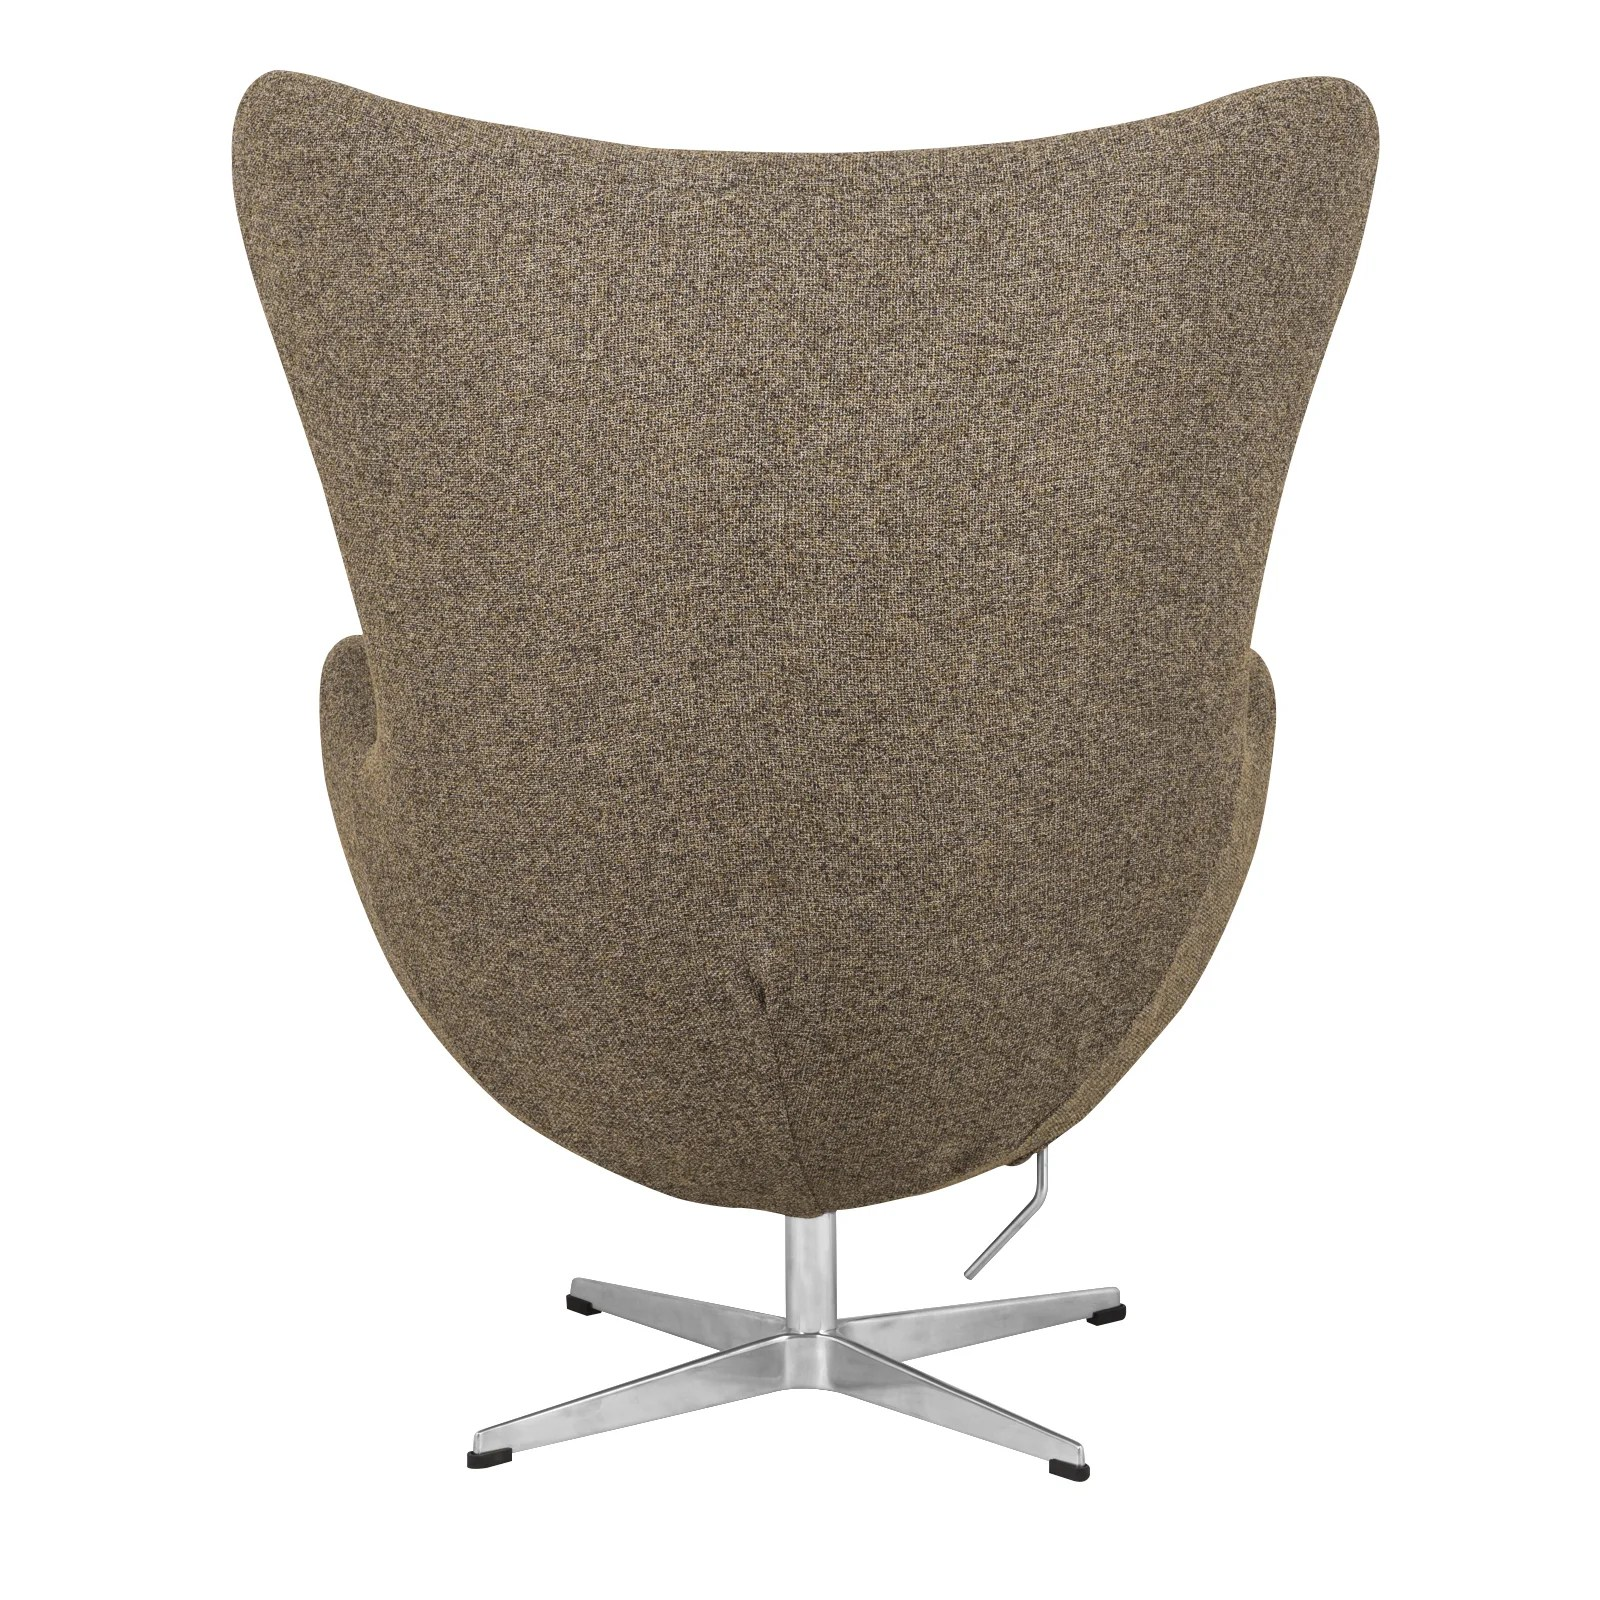 hight resolution of shop leisuremod modena oatmeal wool modern accent lounge chair w ottoman free shipping today overstock 14426754